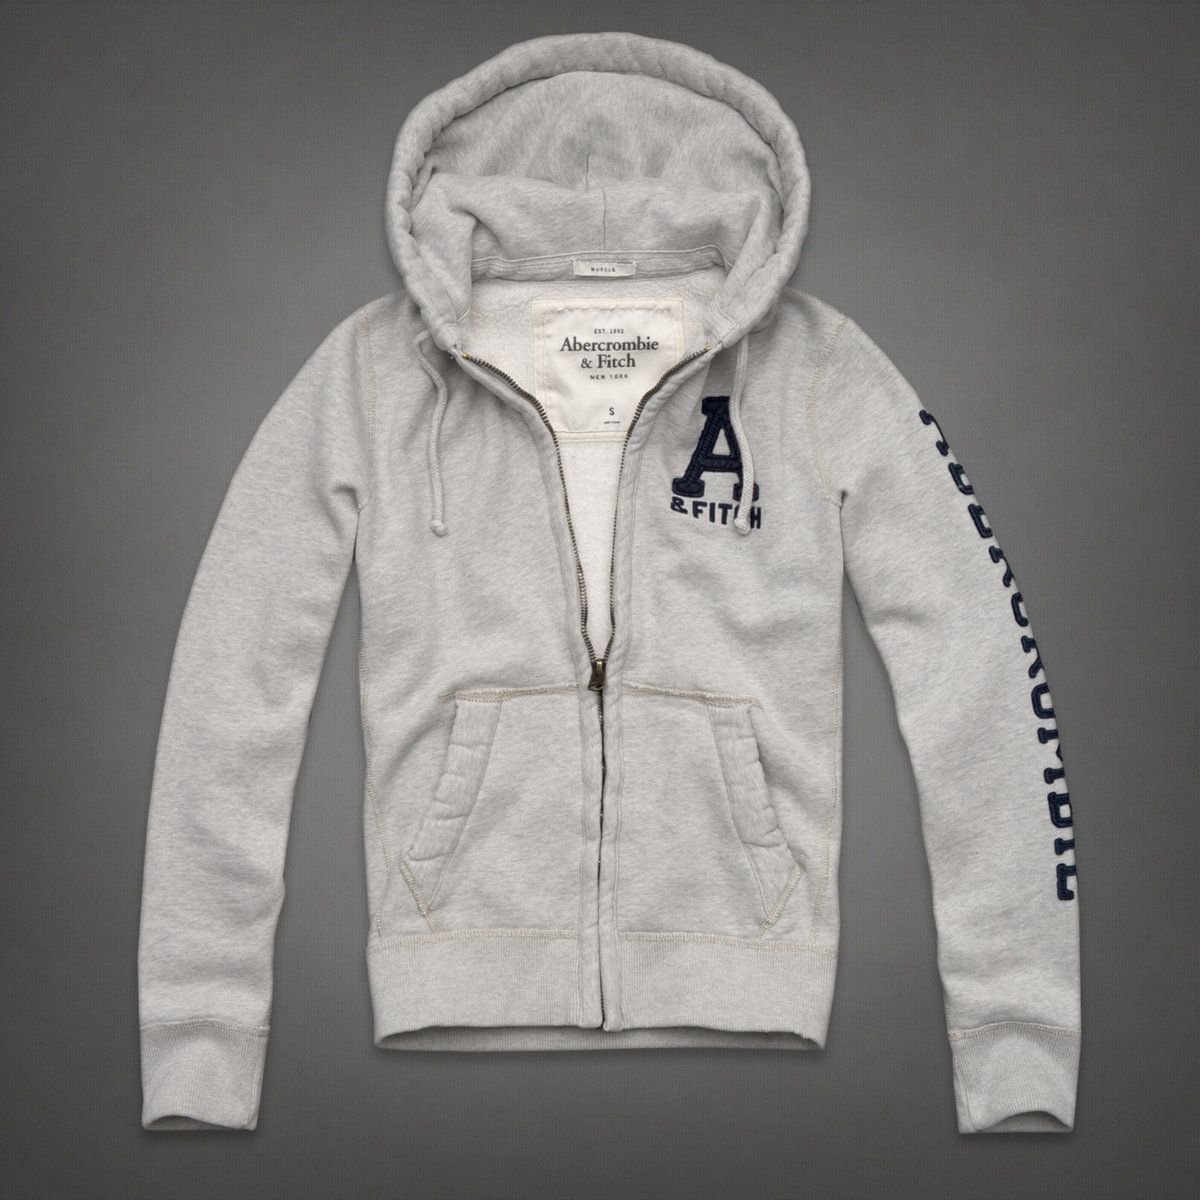 abercrombie & fitch mens hoodies clearance